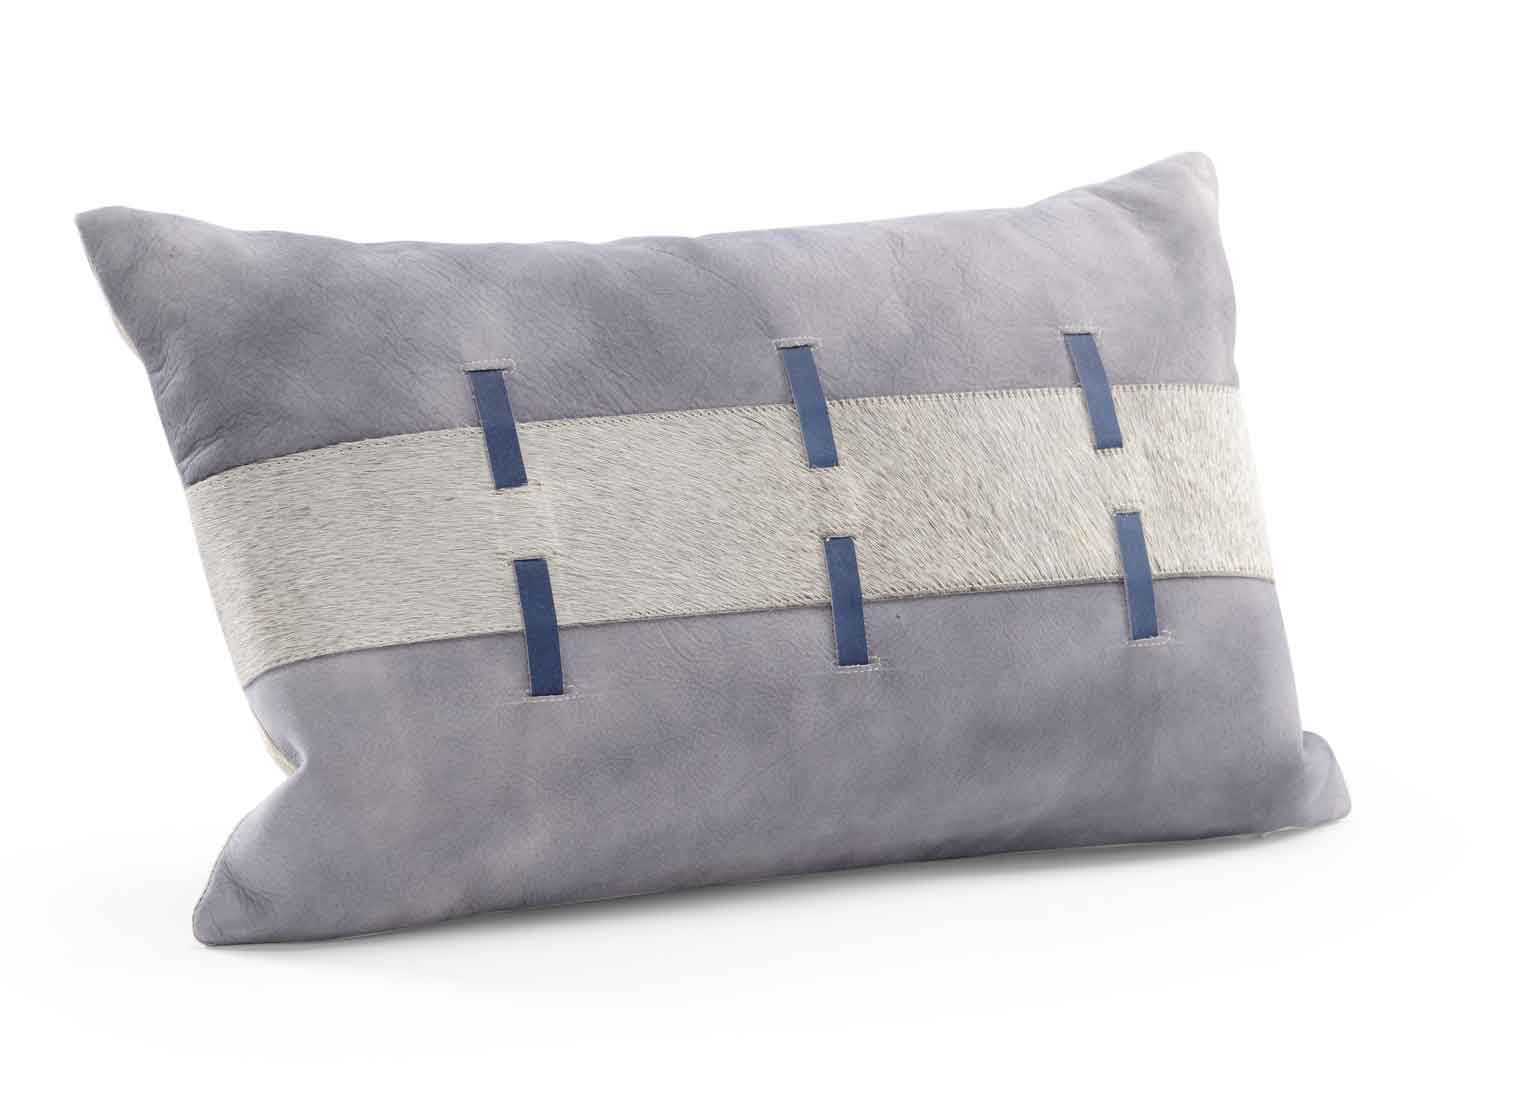 Acoma Pillow Suede Hair on Hide Grey Wildwood